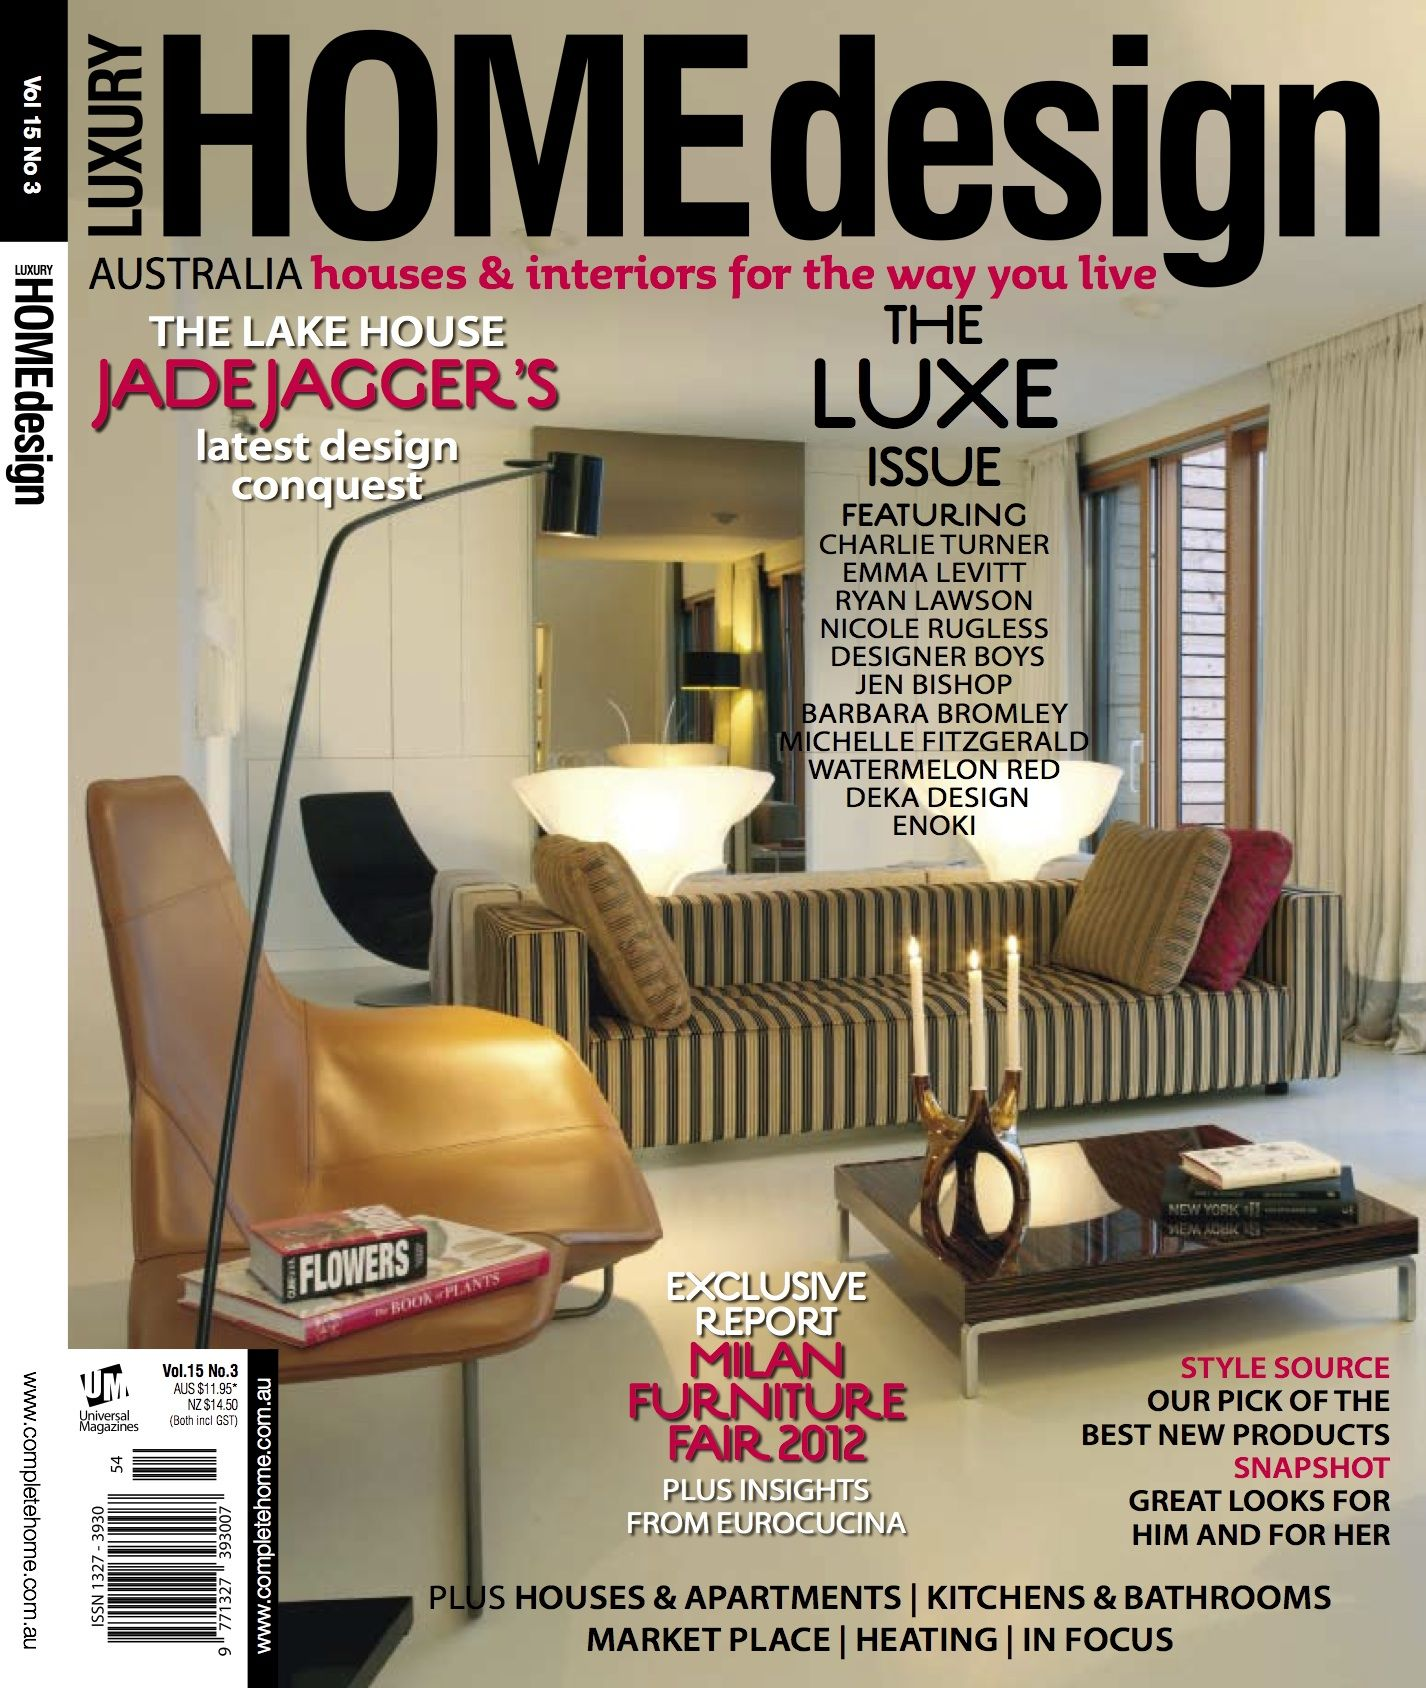 interior design magazine covers - Google Search | magazine template ...